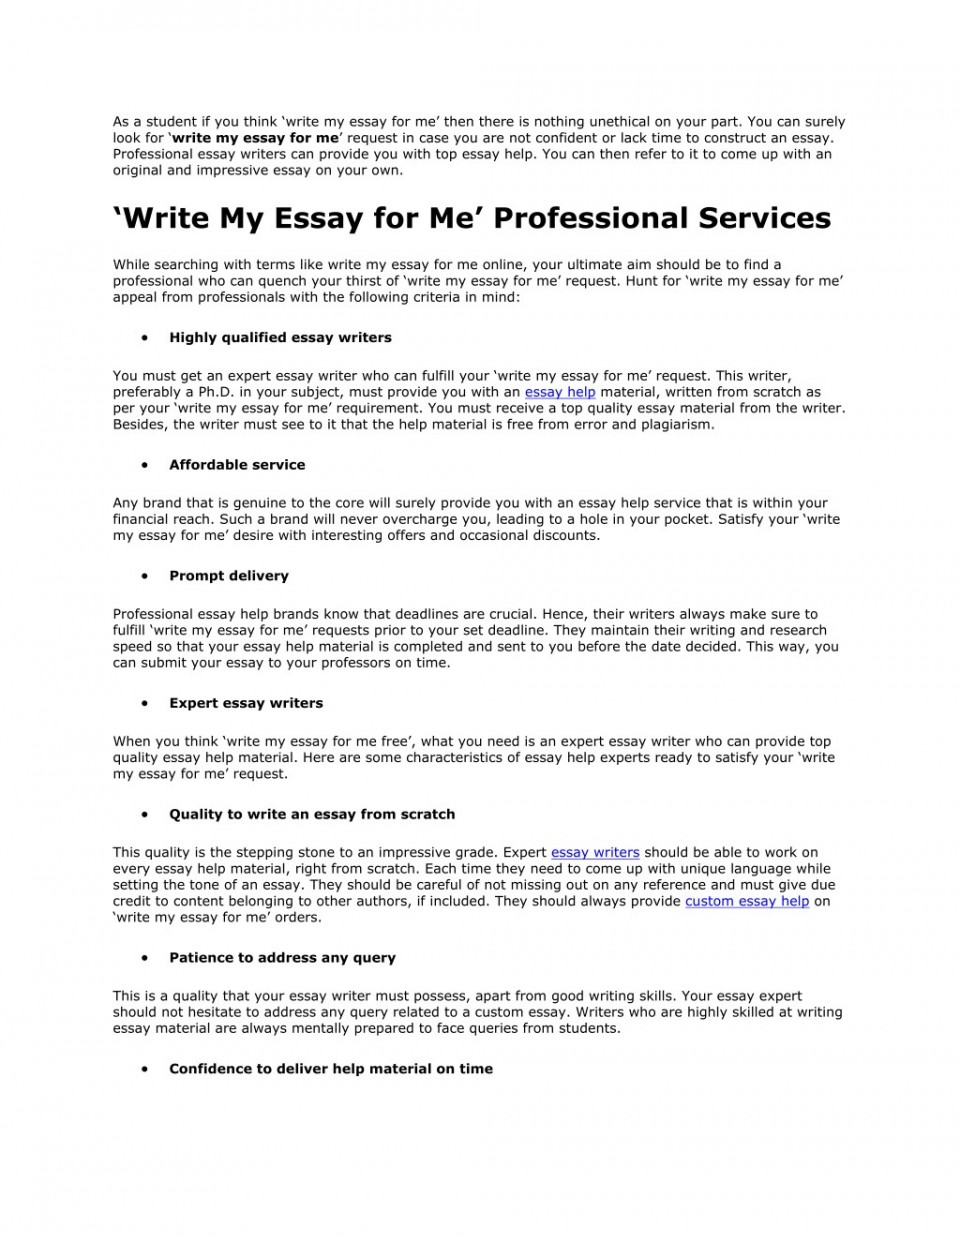 006 Essay Example Write For Me As Student If You Think My Amazing Custom Cheap Free 960